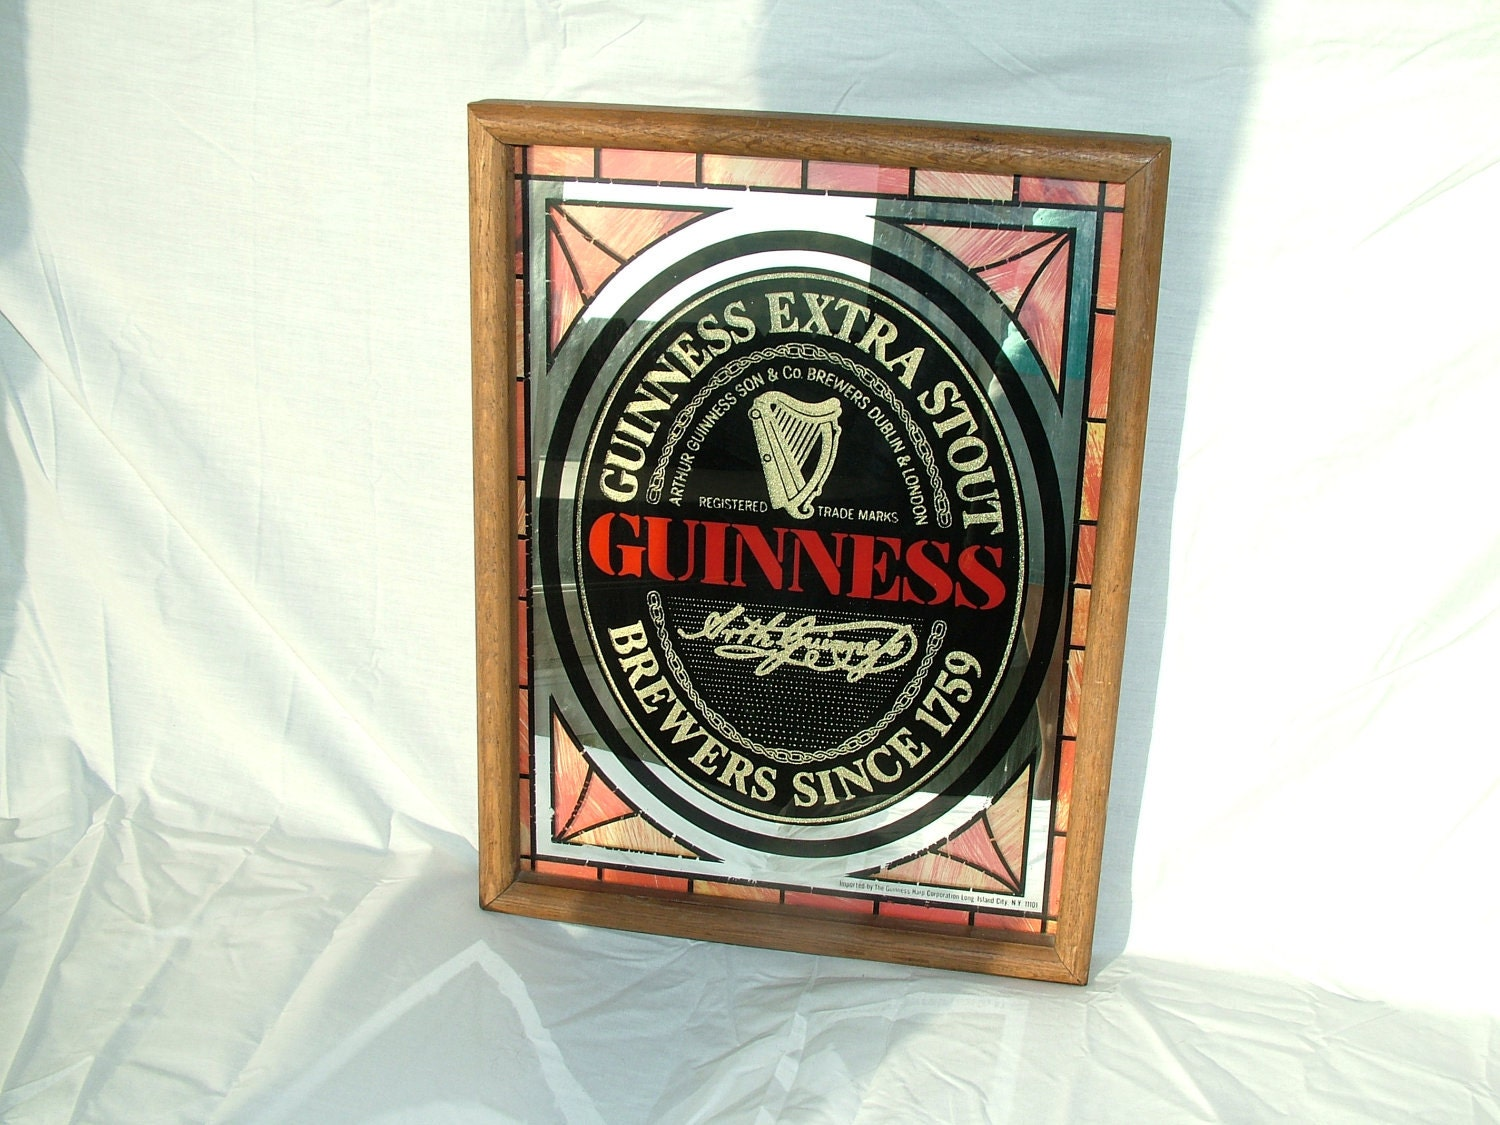 Vintage Guinness Stout Beer Stained Glass Mirror By